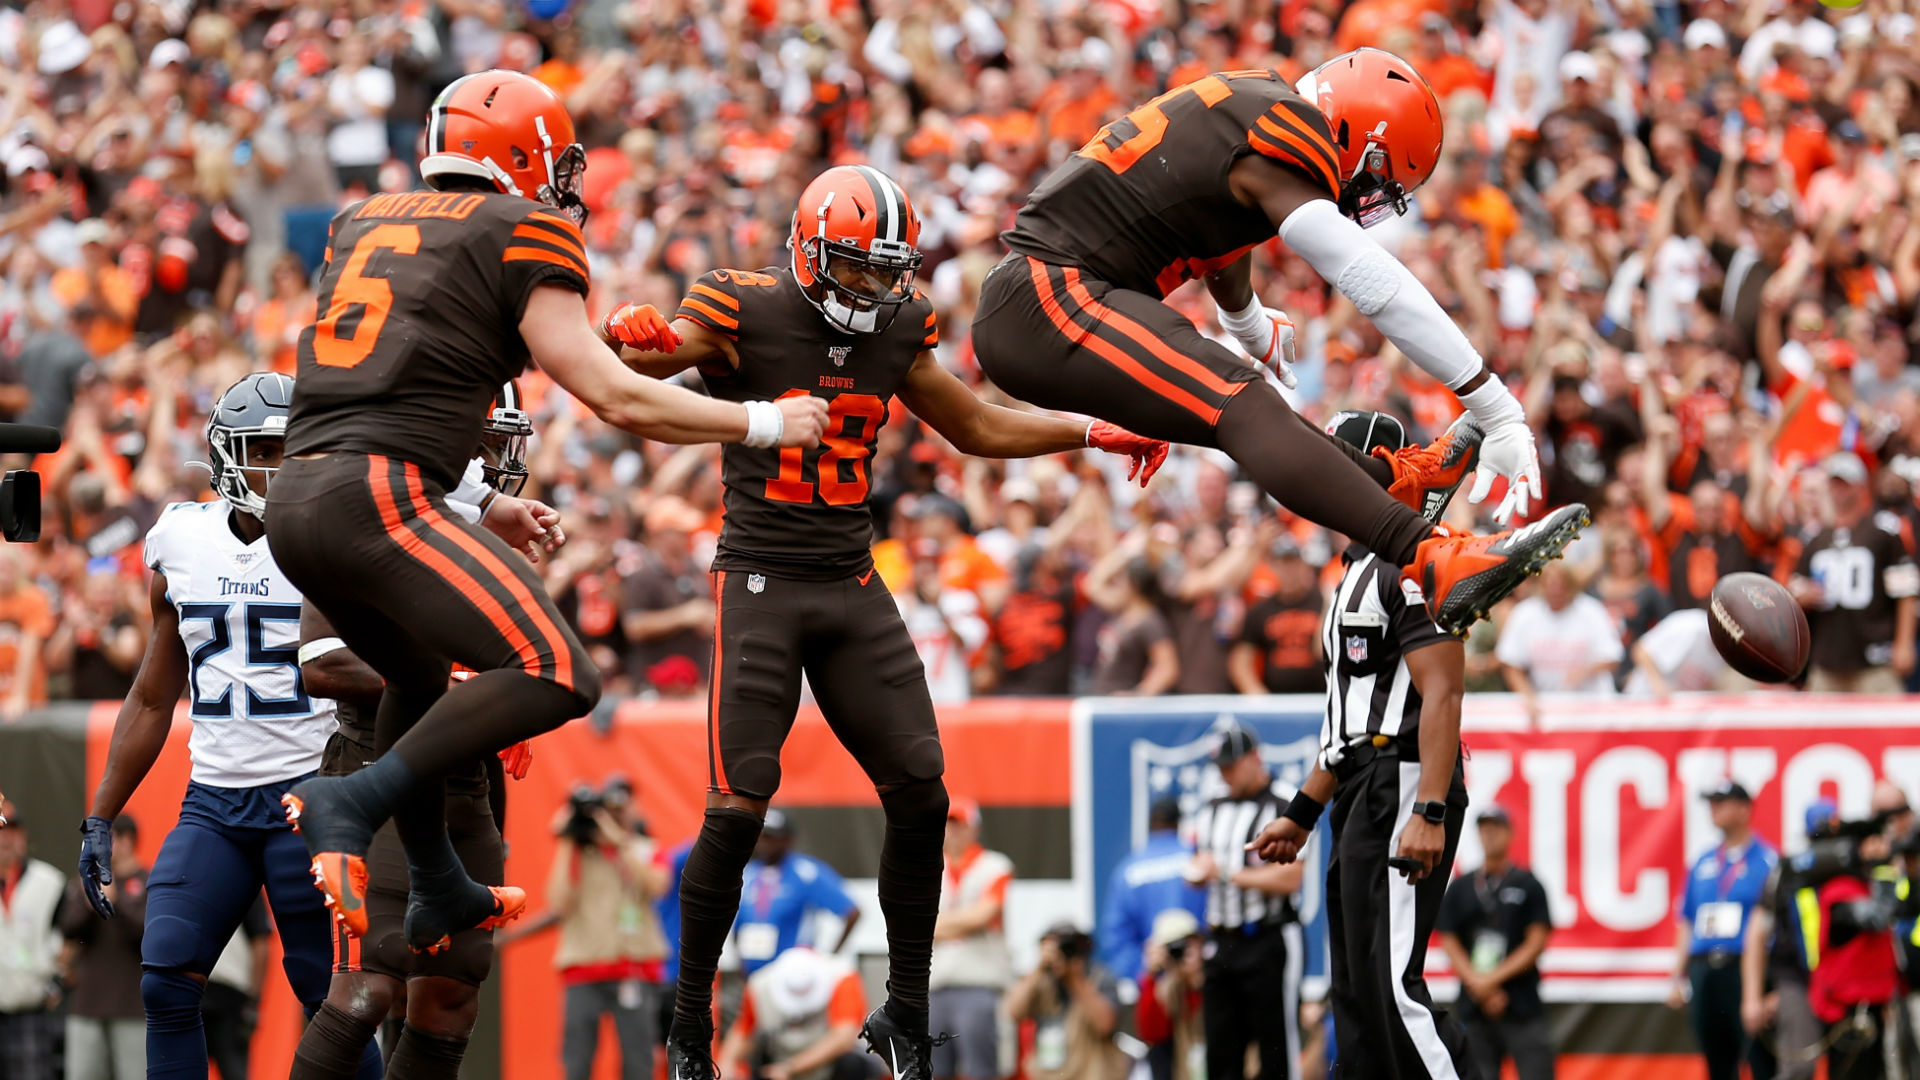 David Njoku has been out of action since suffering a wrist injury in Week 2 but could be about to return.